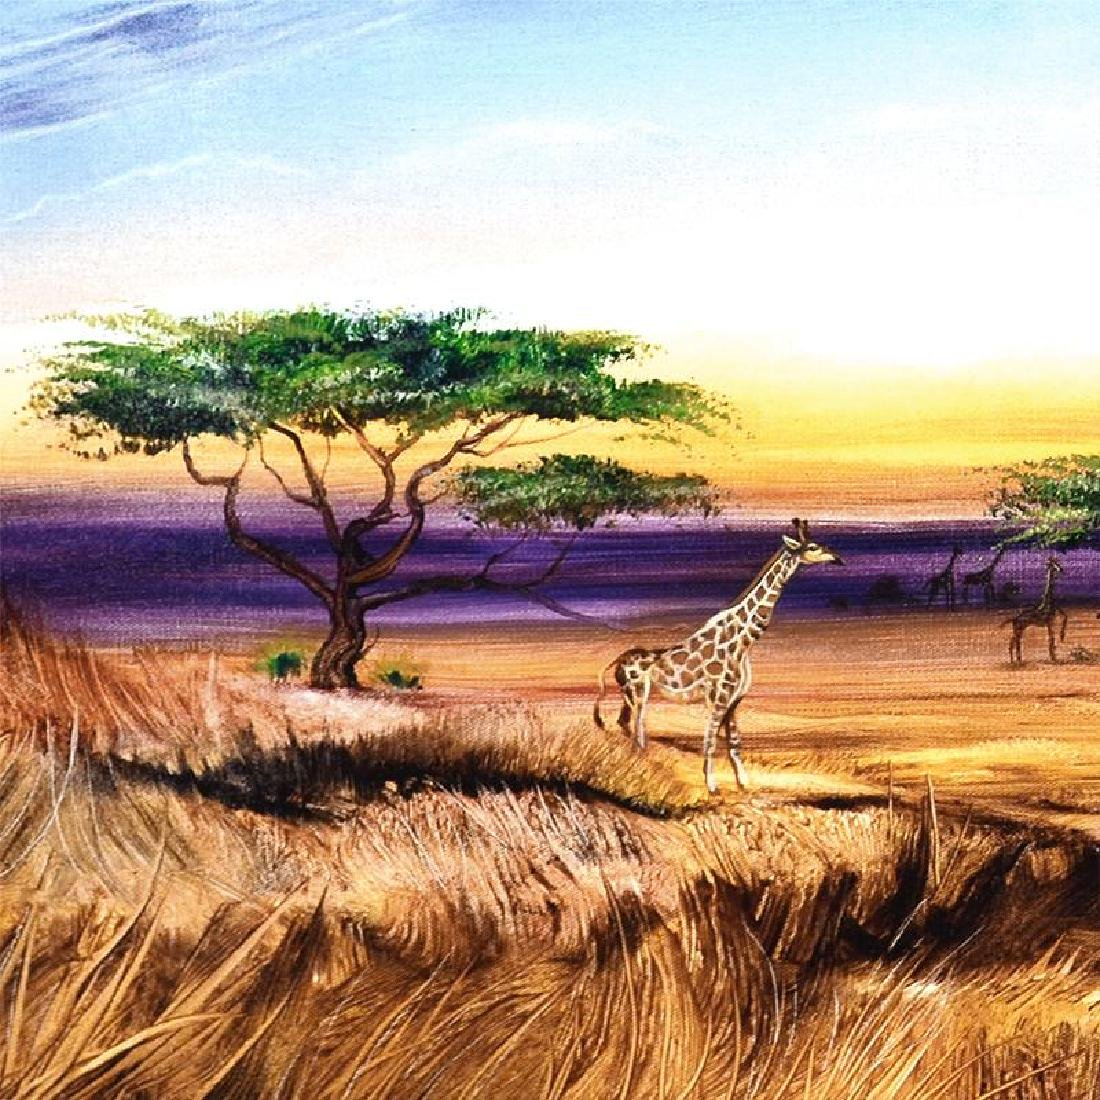 Africa at Peace by Katon, Martin - 2